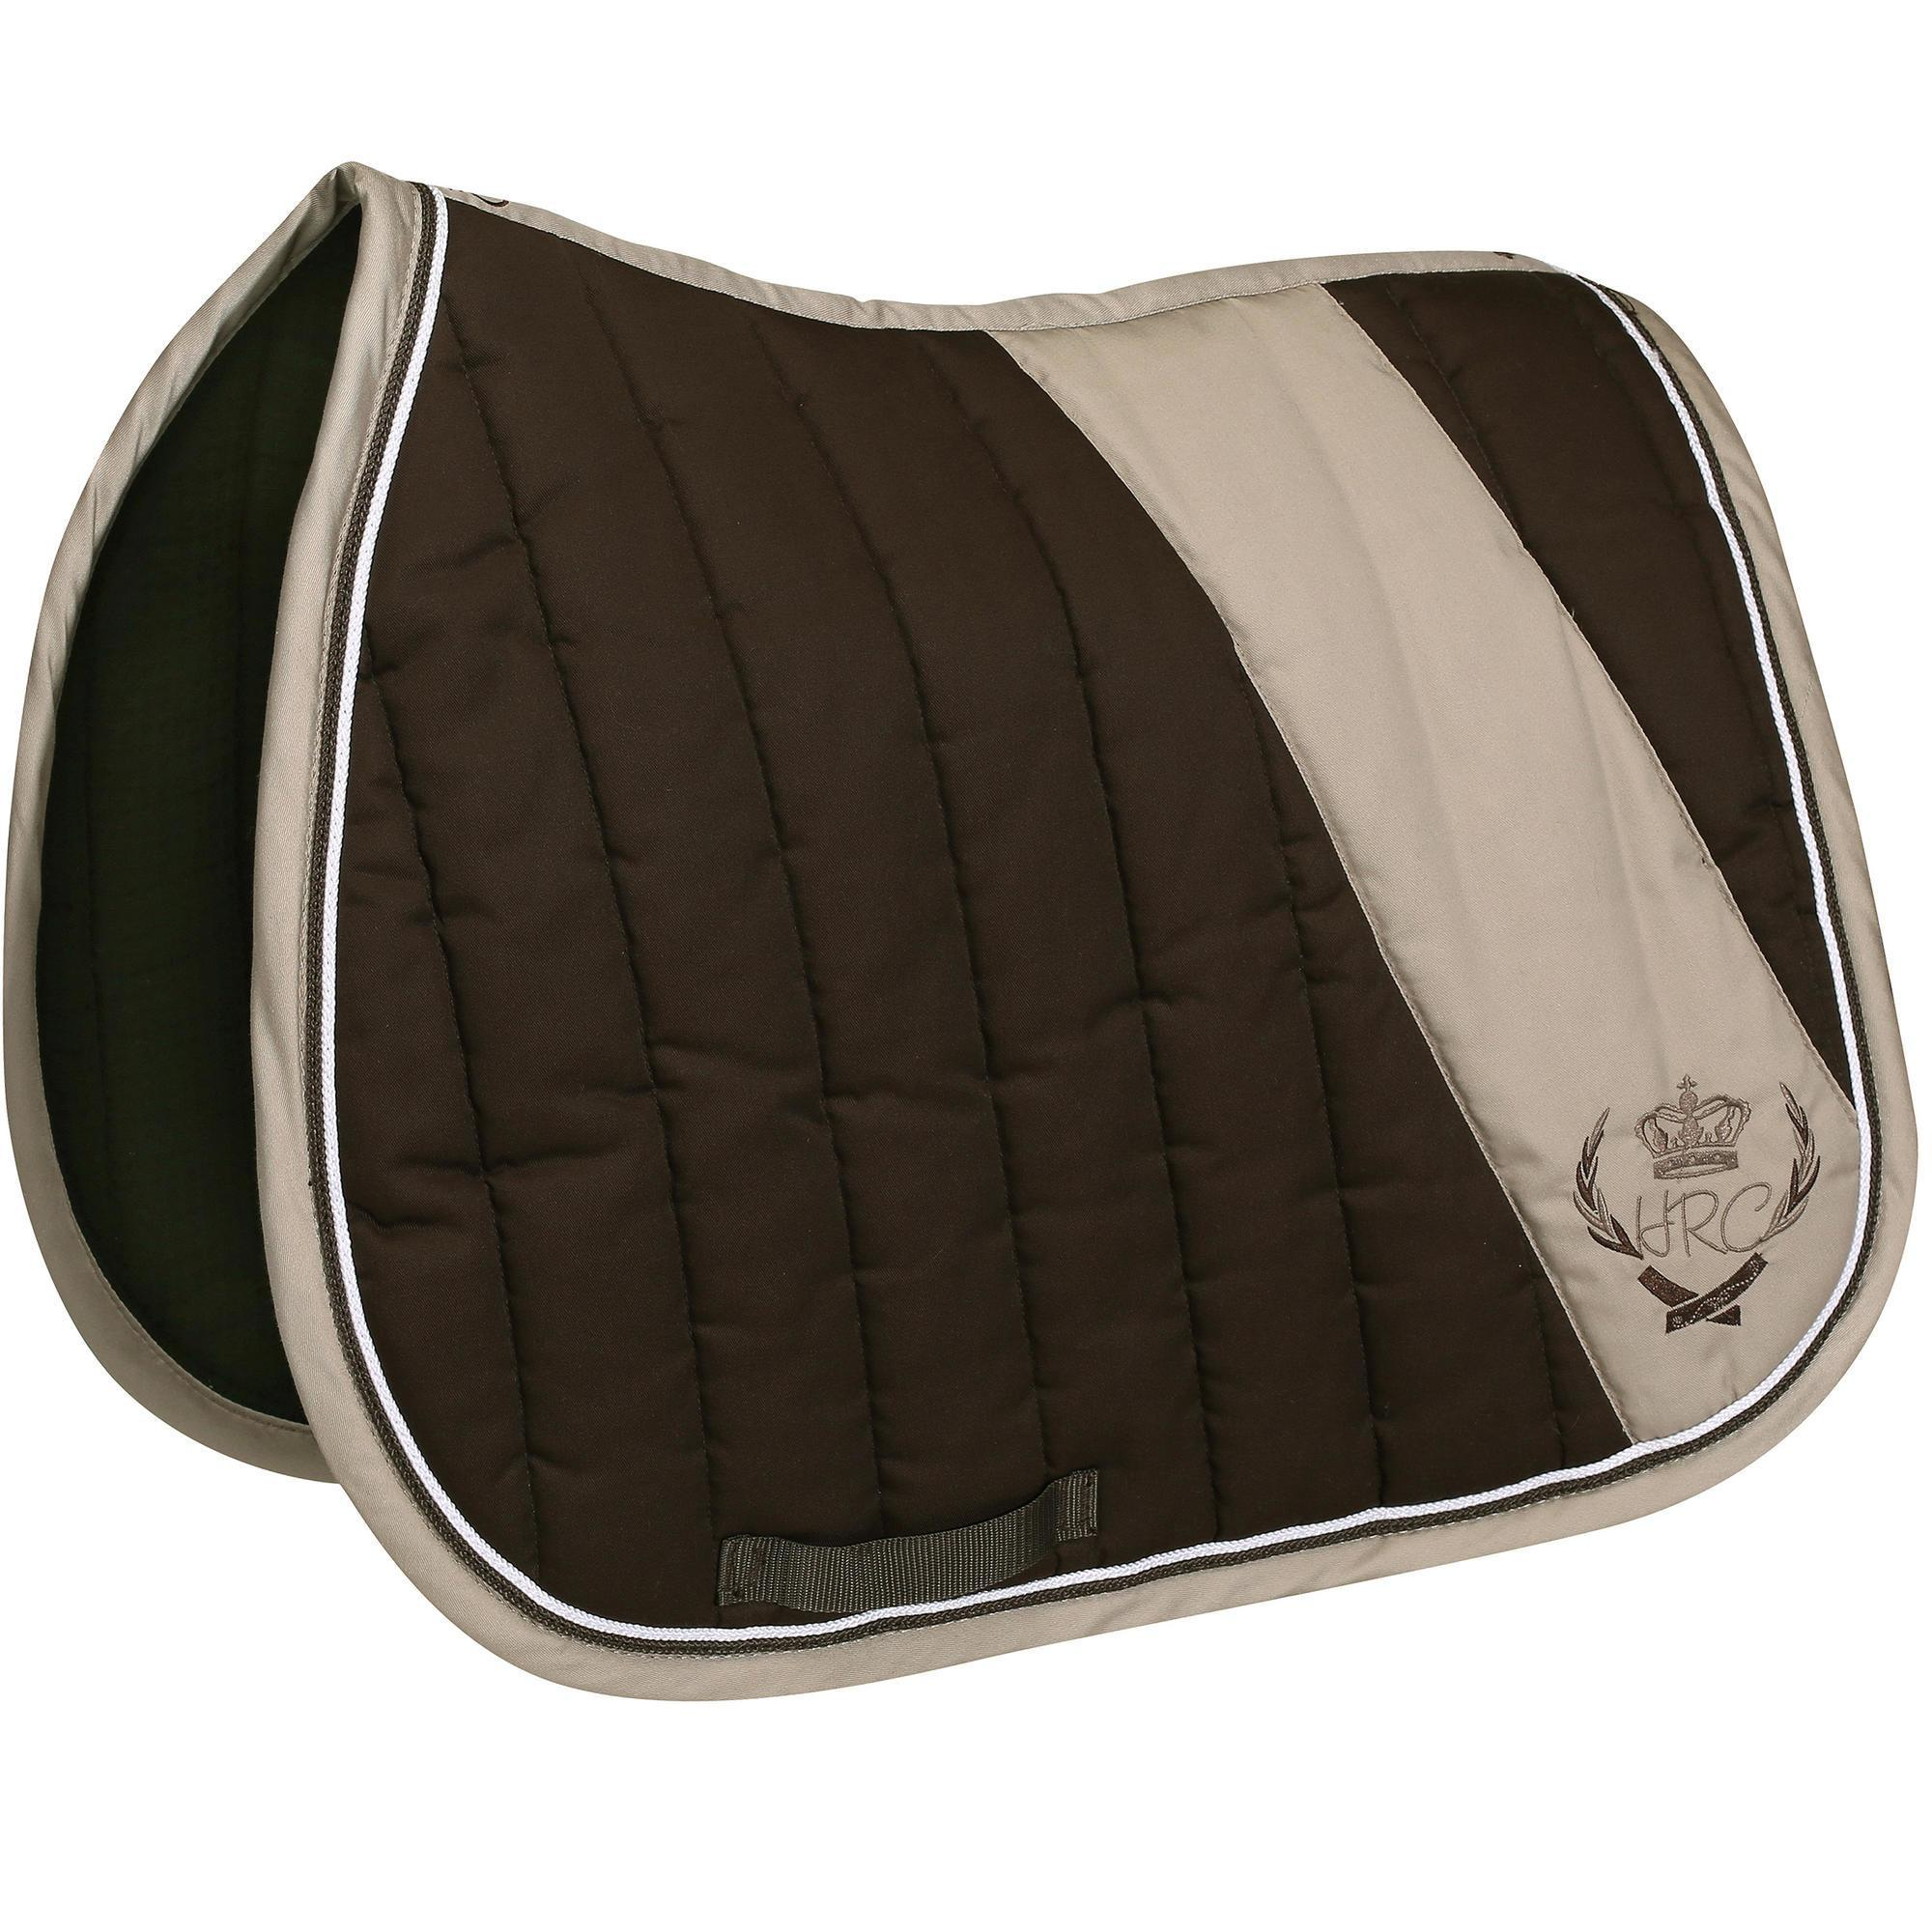 Tapis de selle quitation cheval jump marron beige fouganza - Tapis decathlon equitation ...